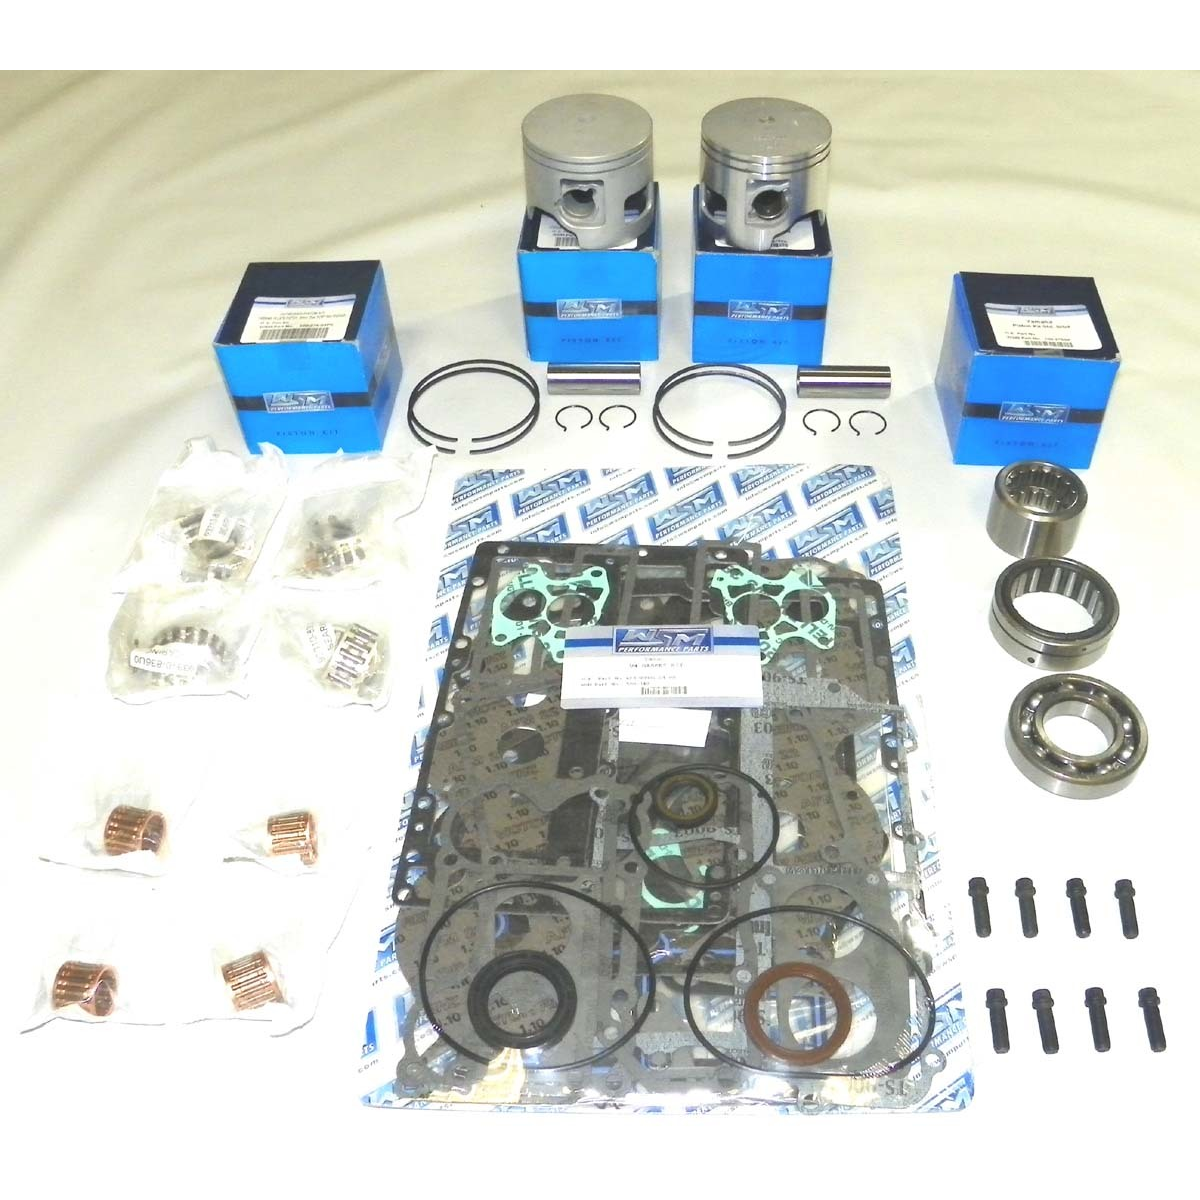 category-yam-4-cyl-rebuild-kits.jpg